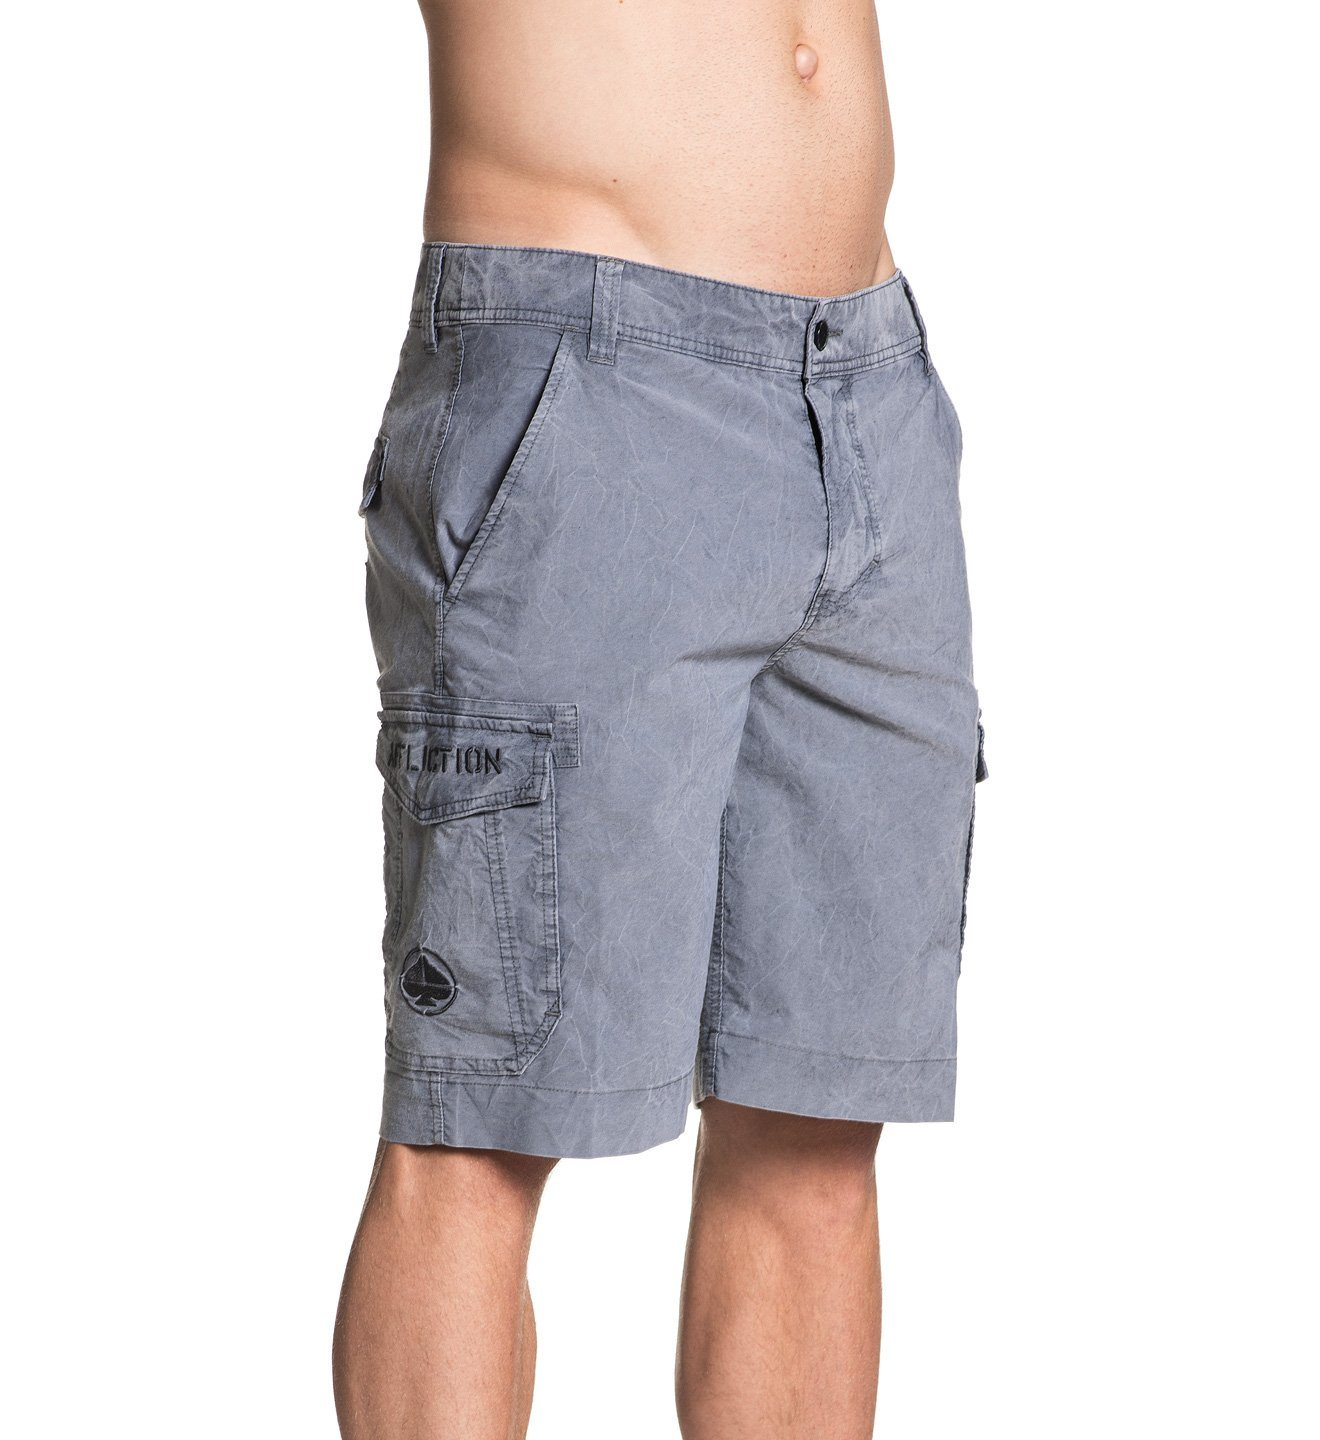 Wallace Shorts - Mens Shorts And Boardshorts - Affliction Clothing